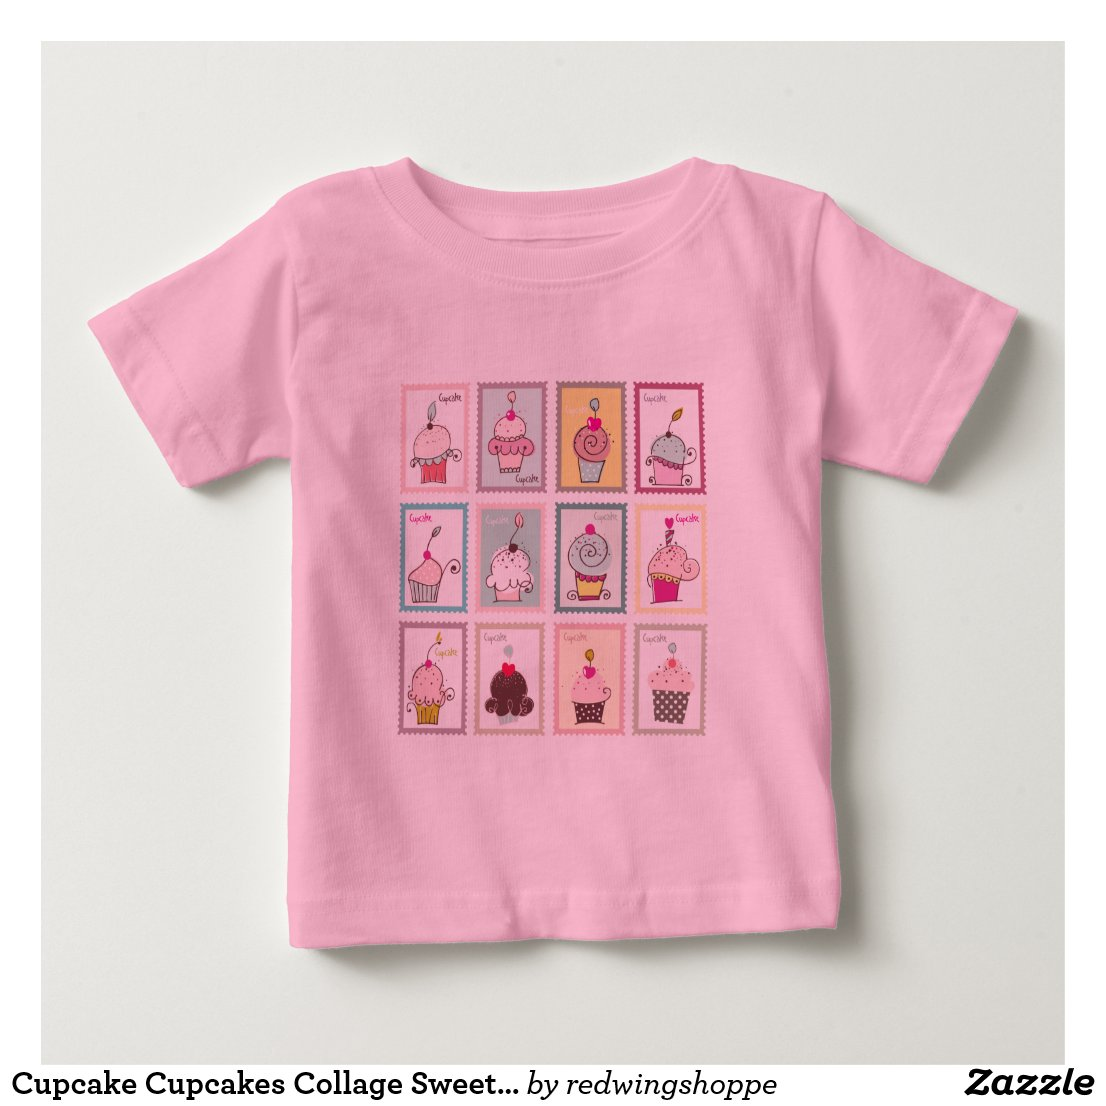 Cupcake Cupcakes Collage Sweet Desserts Snack Love Baby T-Shirt